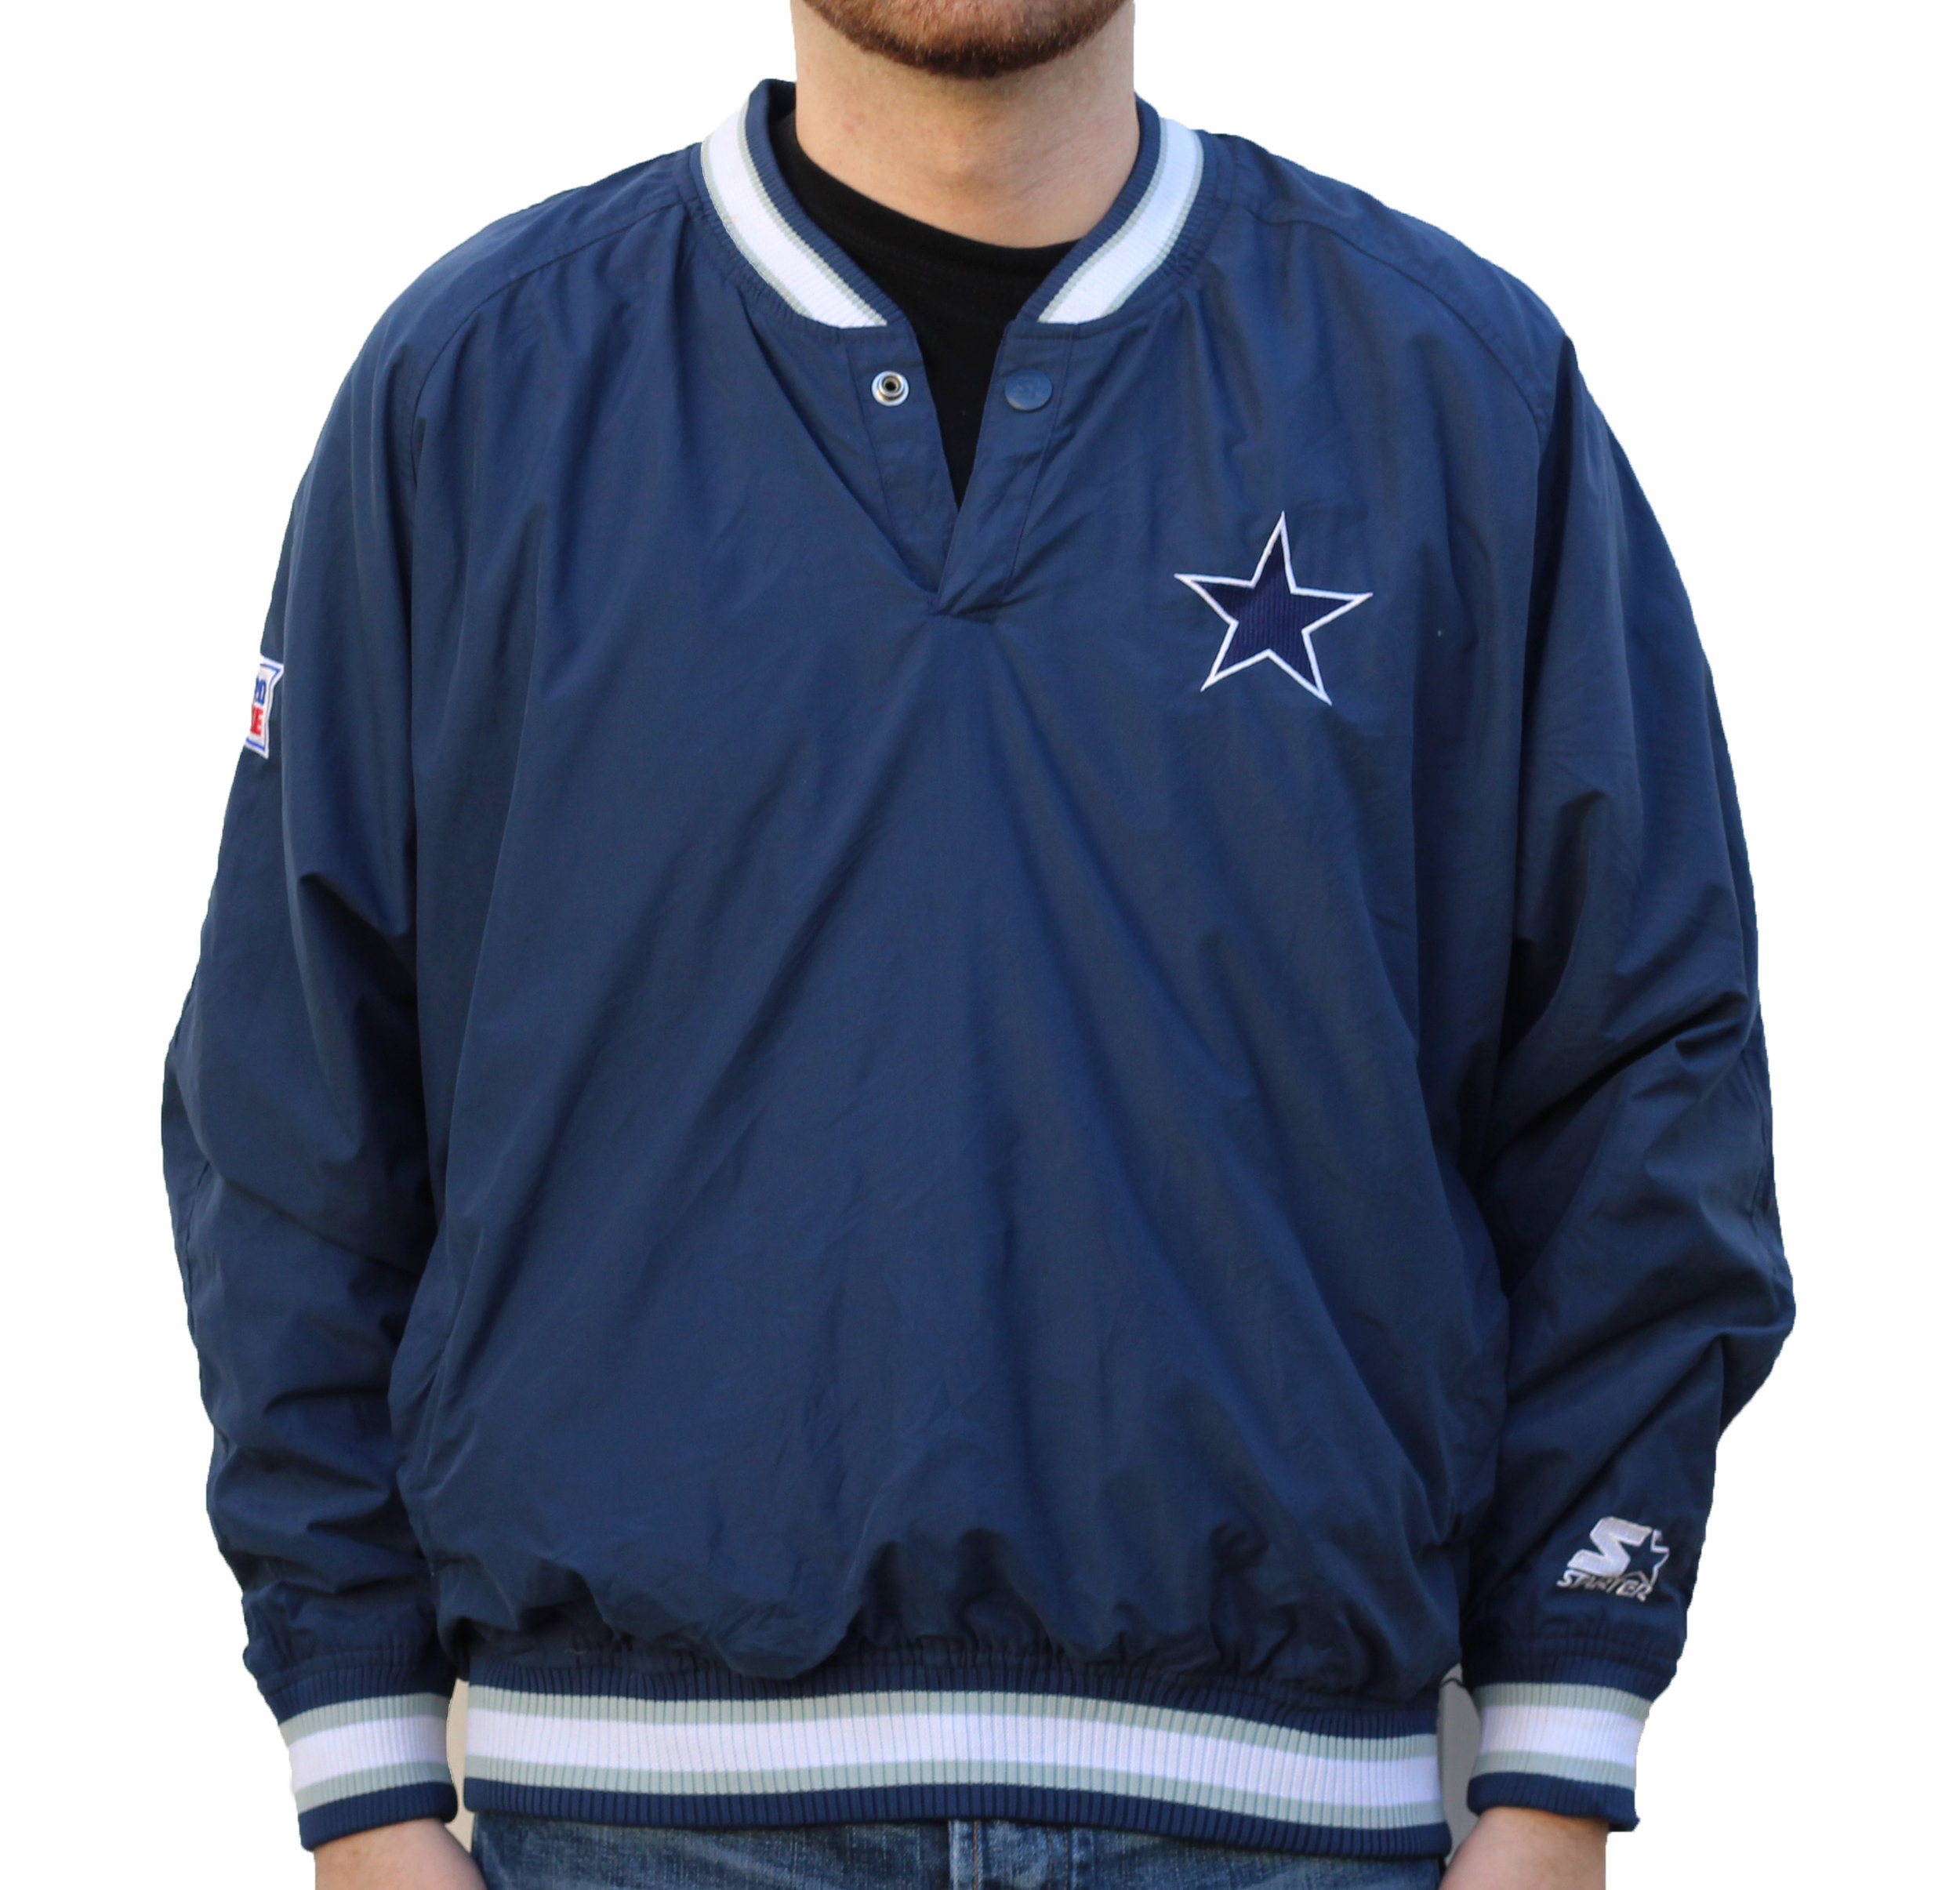 brand new 9ecf6 71a91 Vintage Starter Dallas Cowboys Pullover Windbreaker (Size M) — Roots